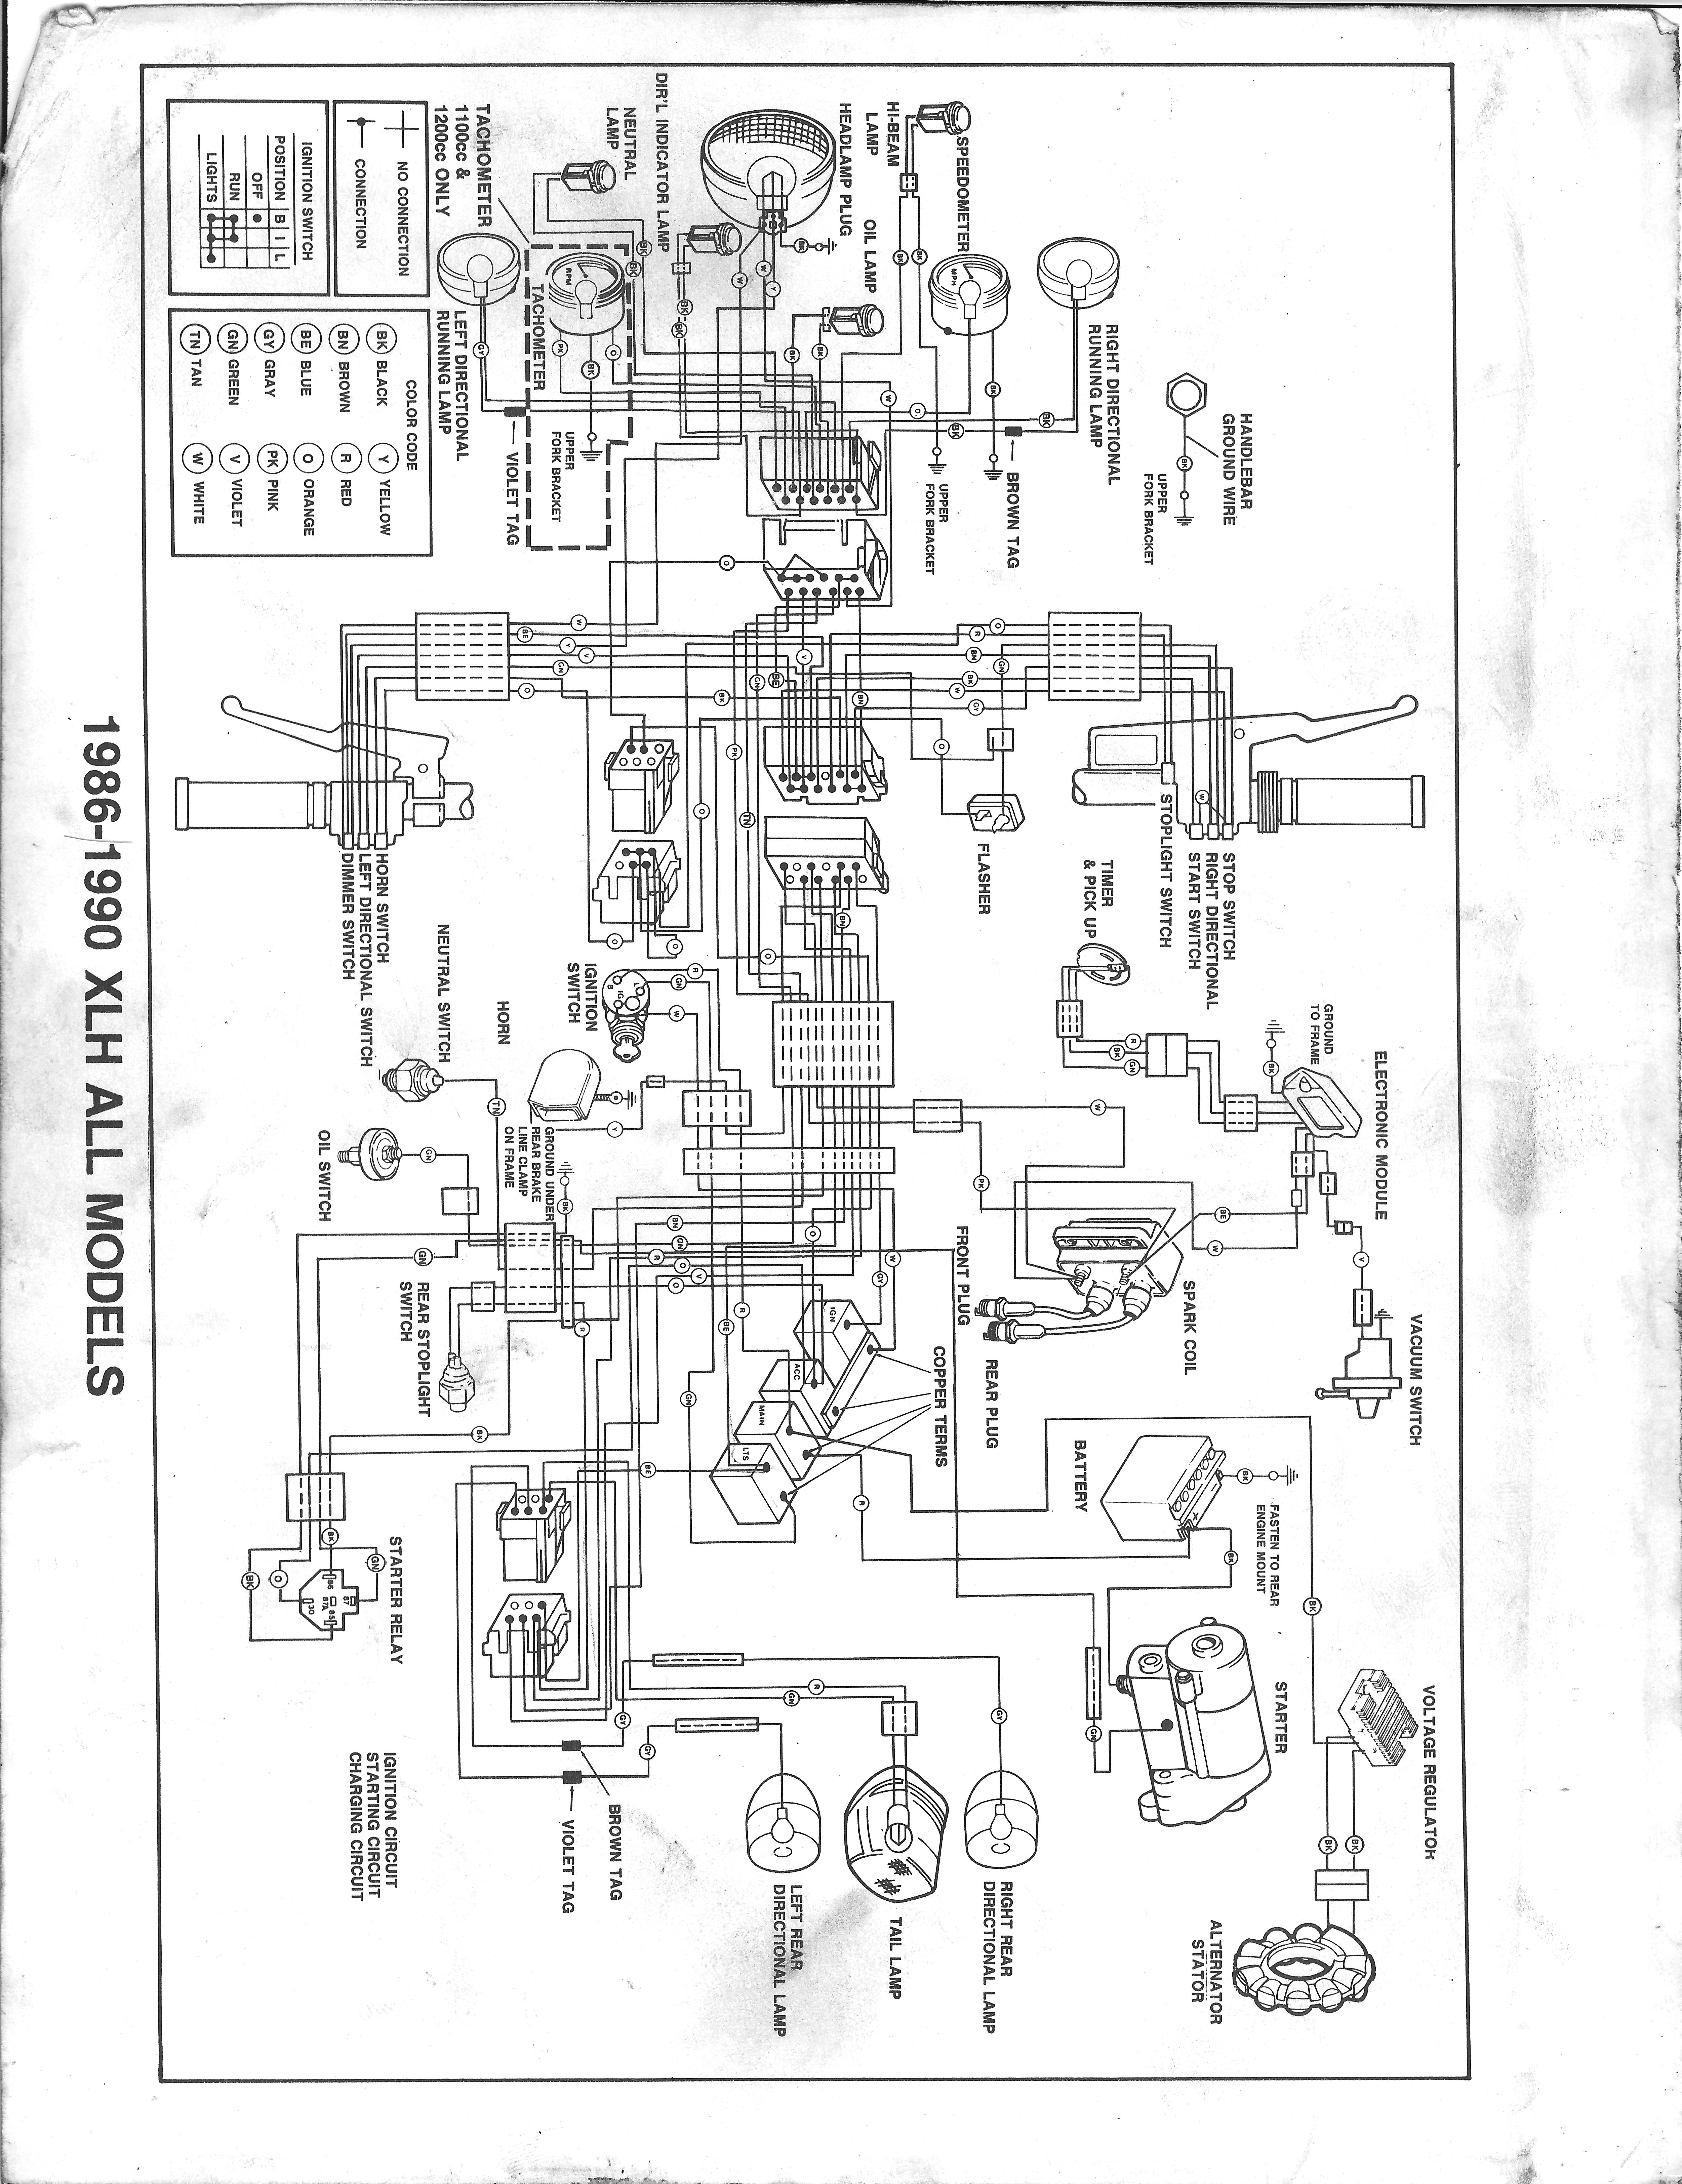 harley fxst ignition switch wiring diagram mallory ignition wiring diagram wiring diagram